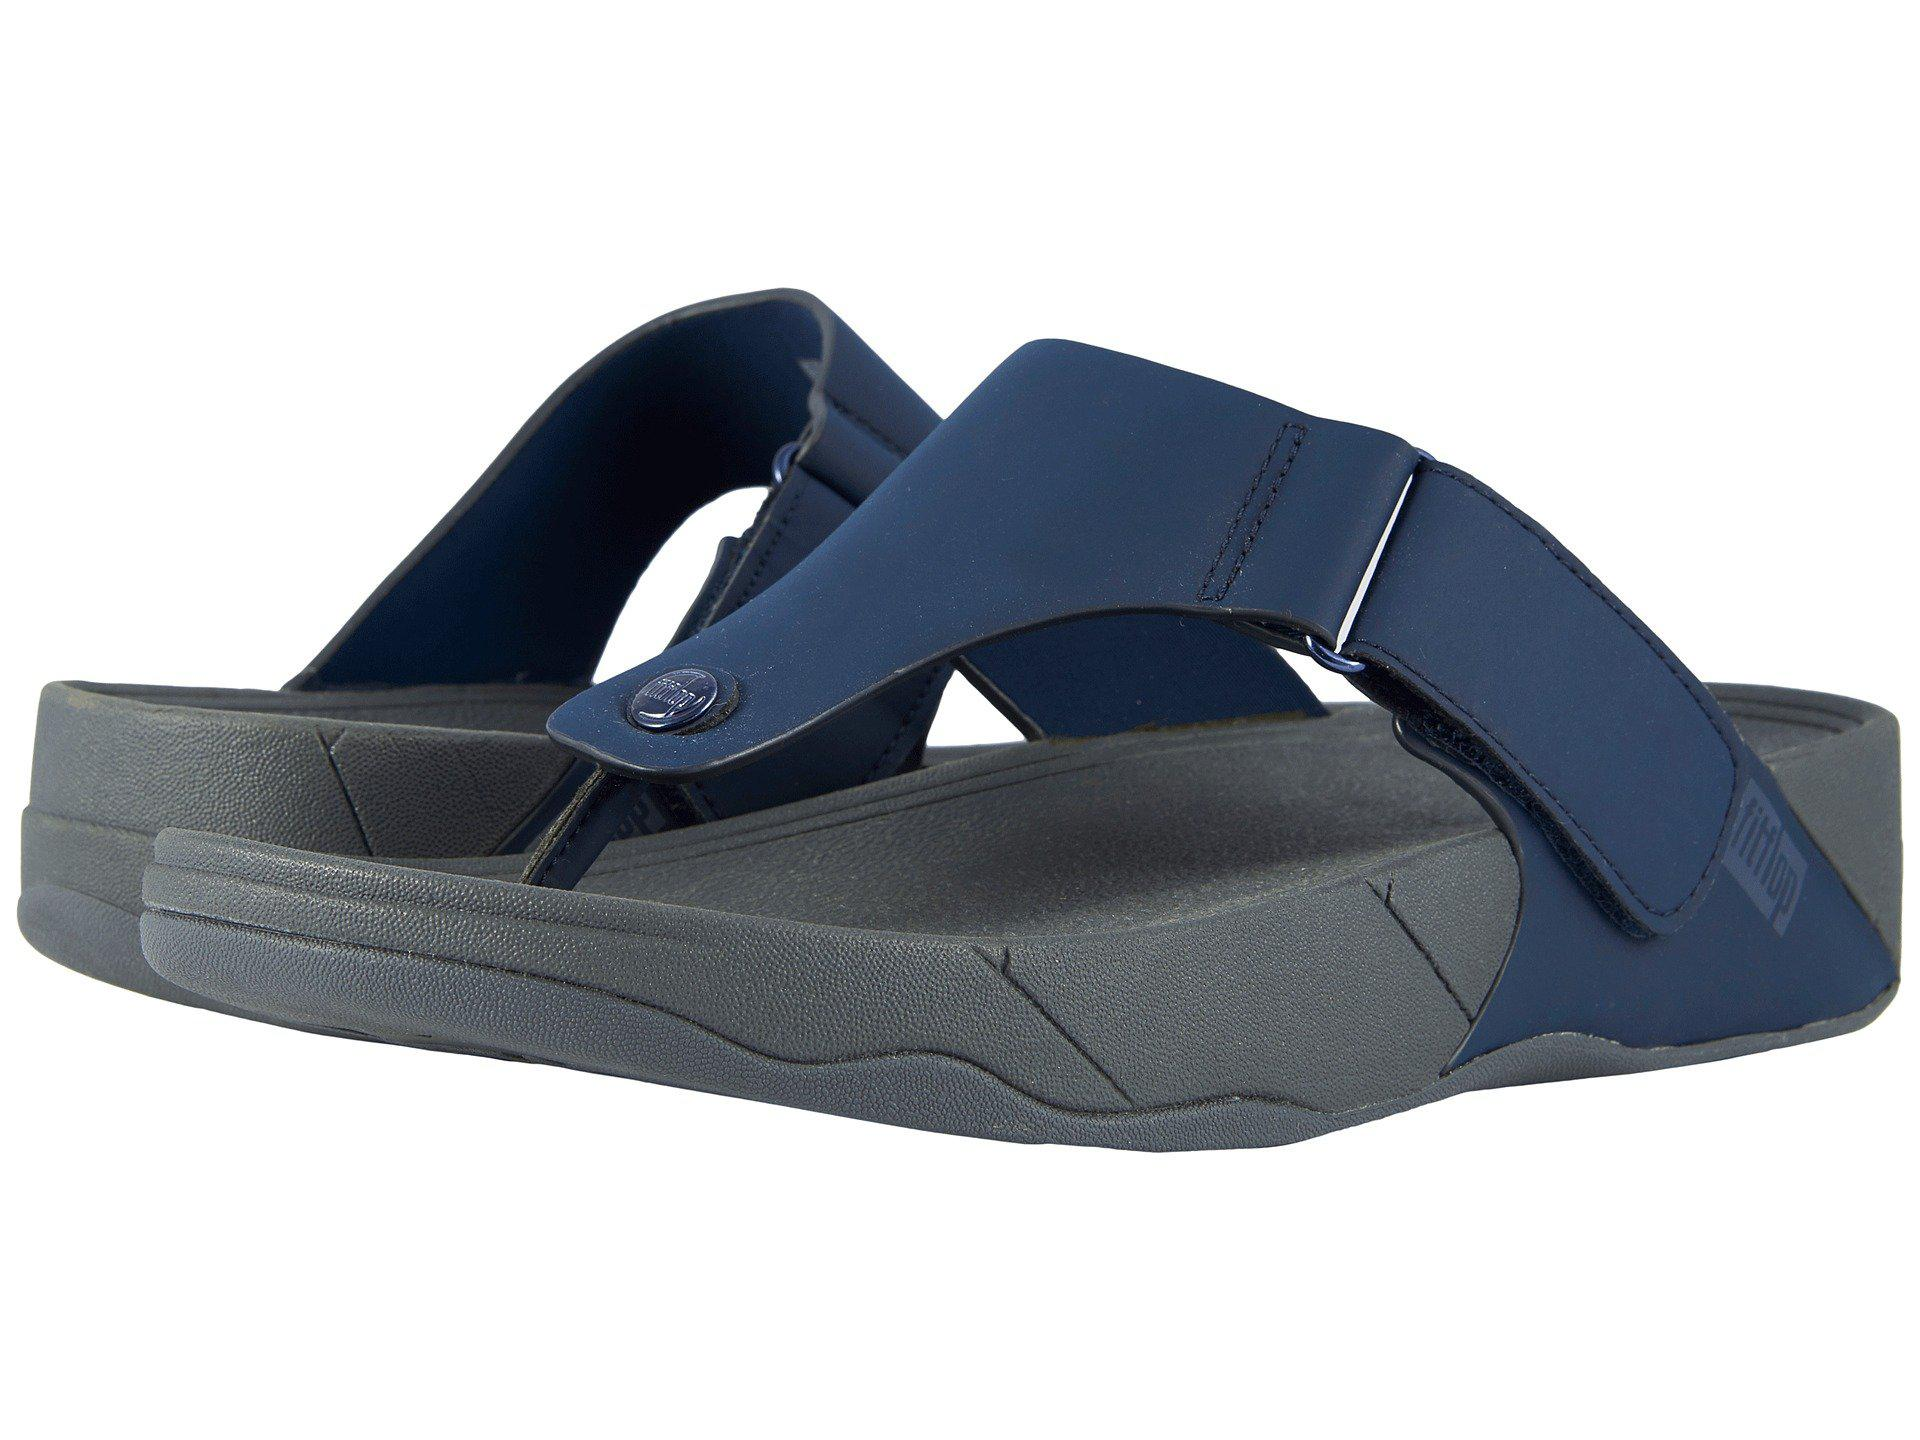 1e7a9f9f1481 Lyst - Fitflop Trakk Ii (midnight Navy) Men s Sandals in Blue for ...